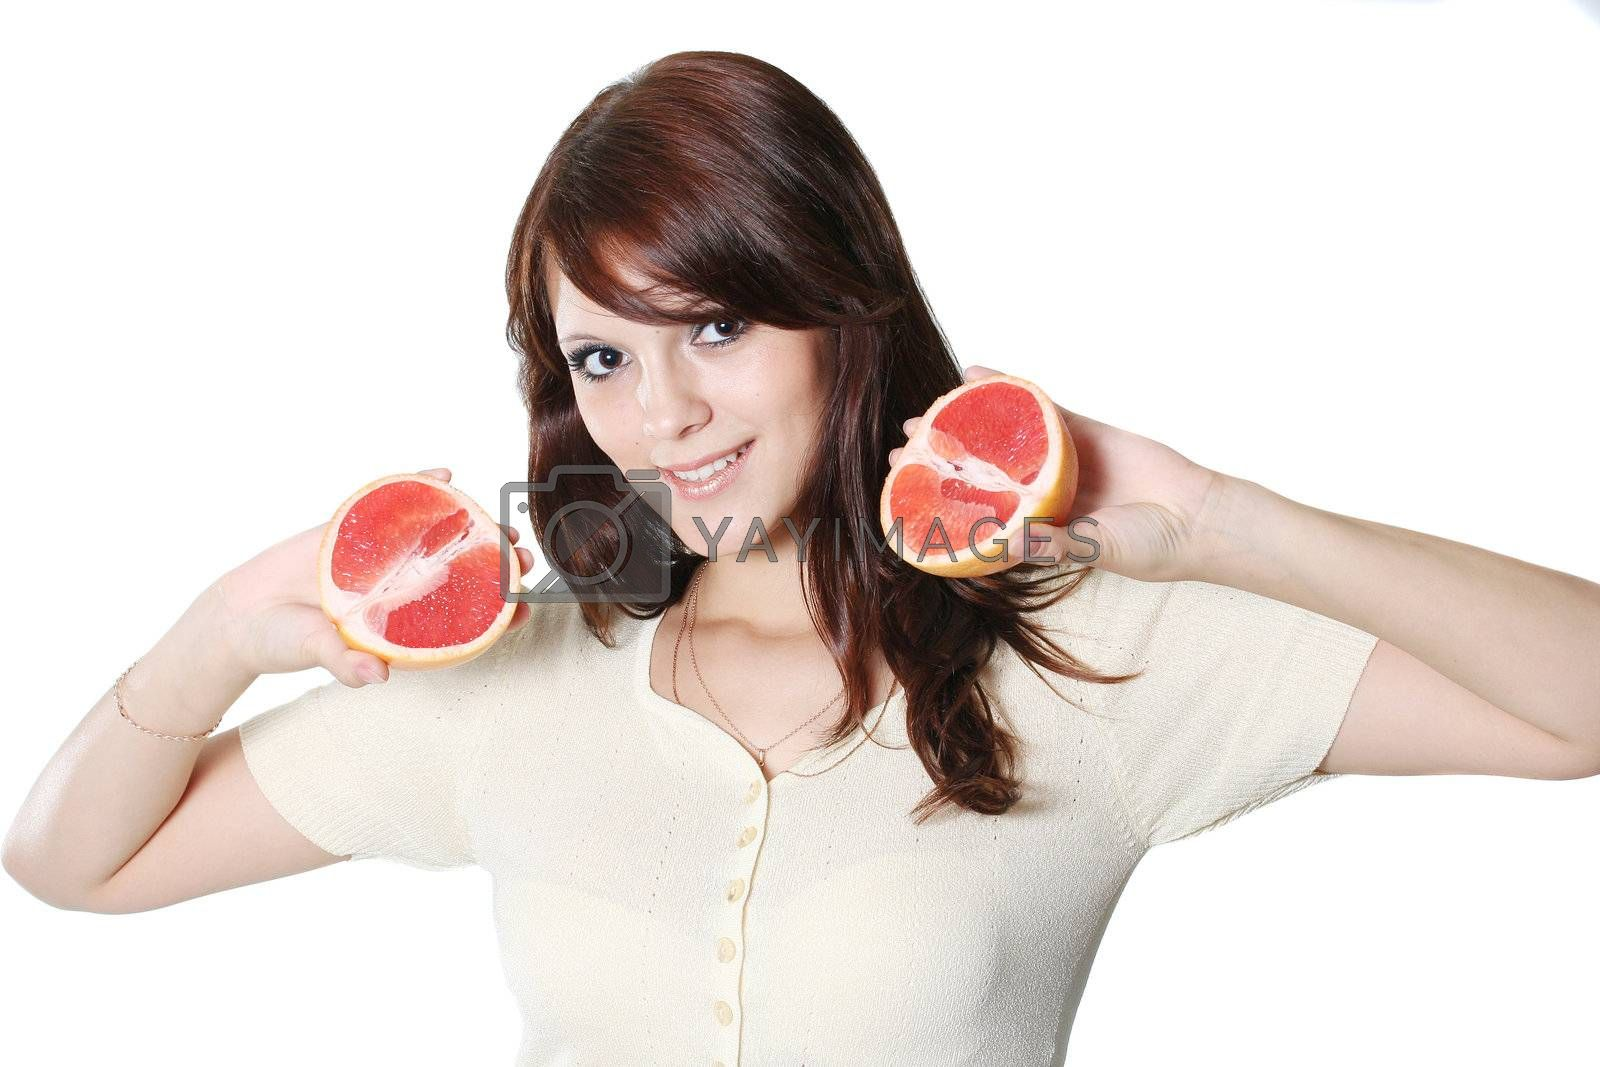 women young person fruit freshness healthcare dieting